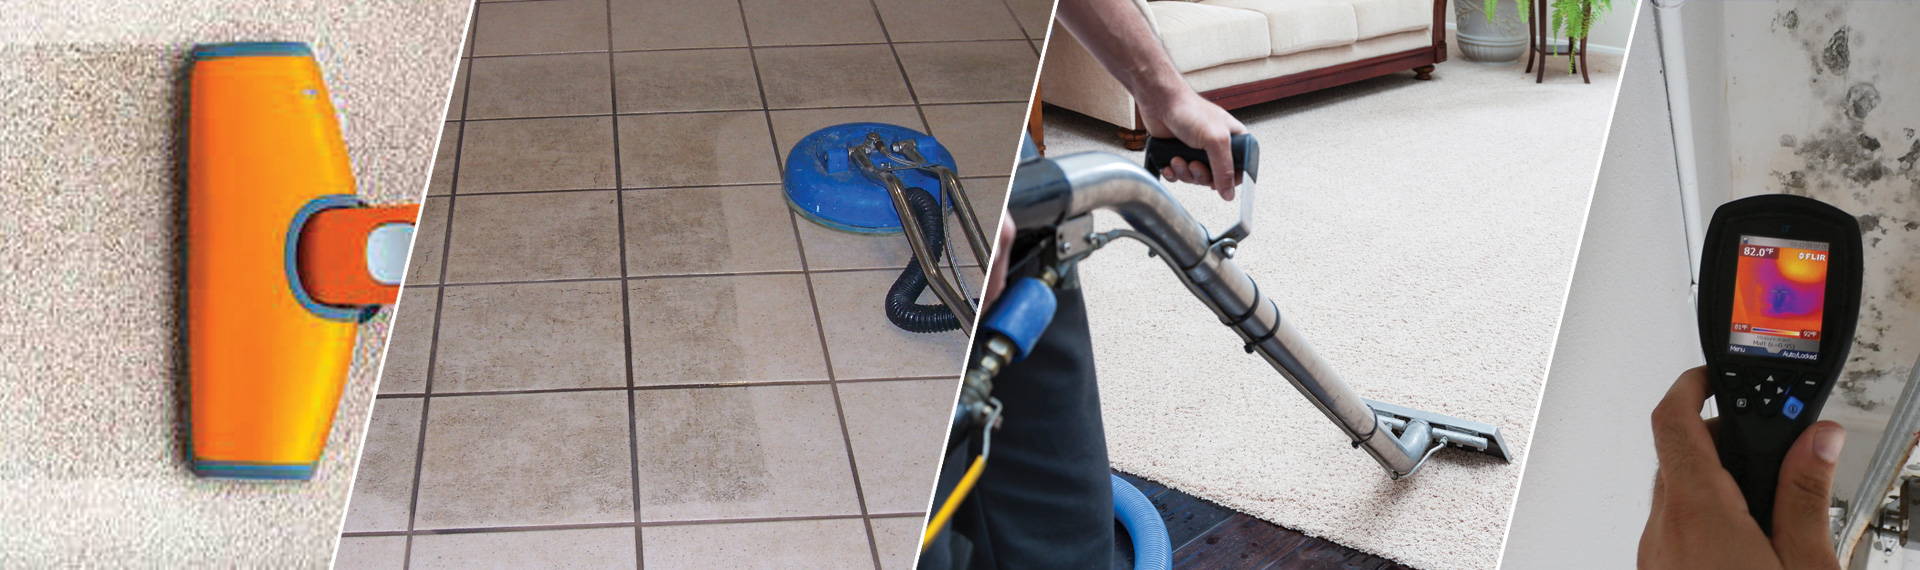 City Carpet Cleaners & Water Damage Restoration Pearland TX